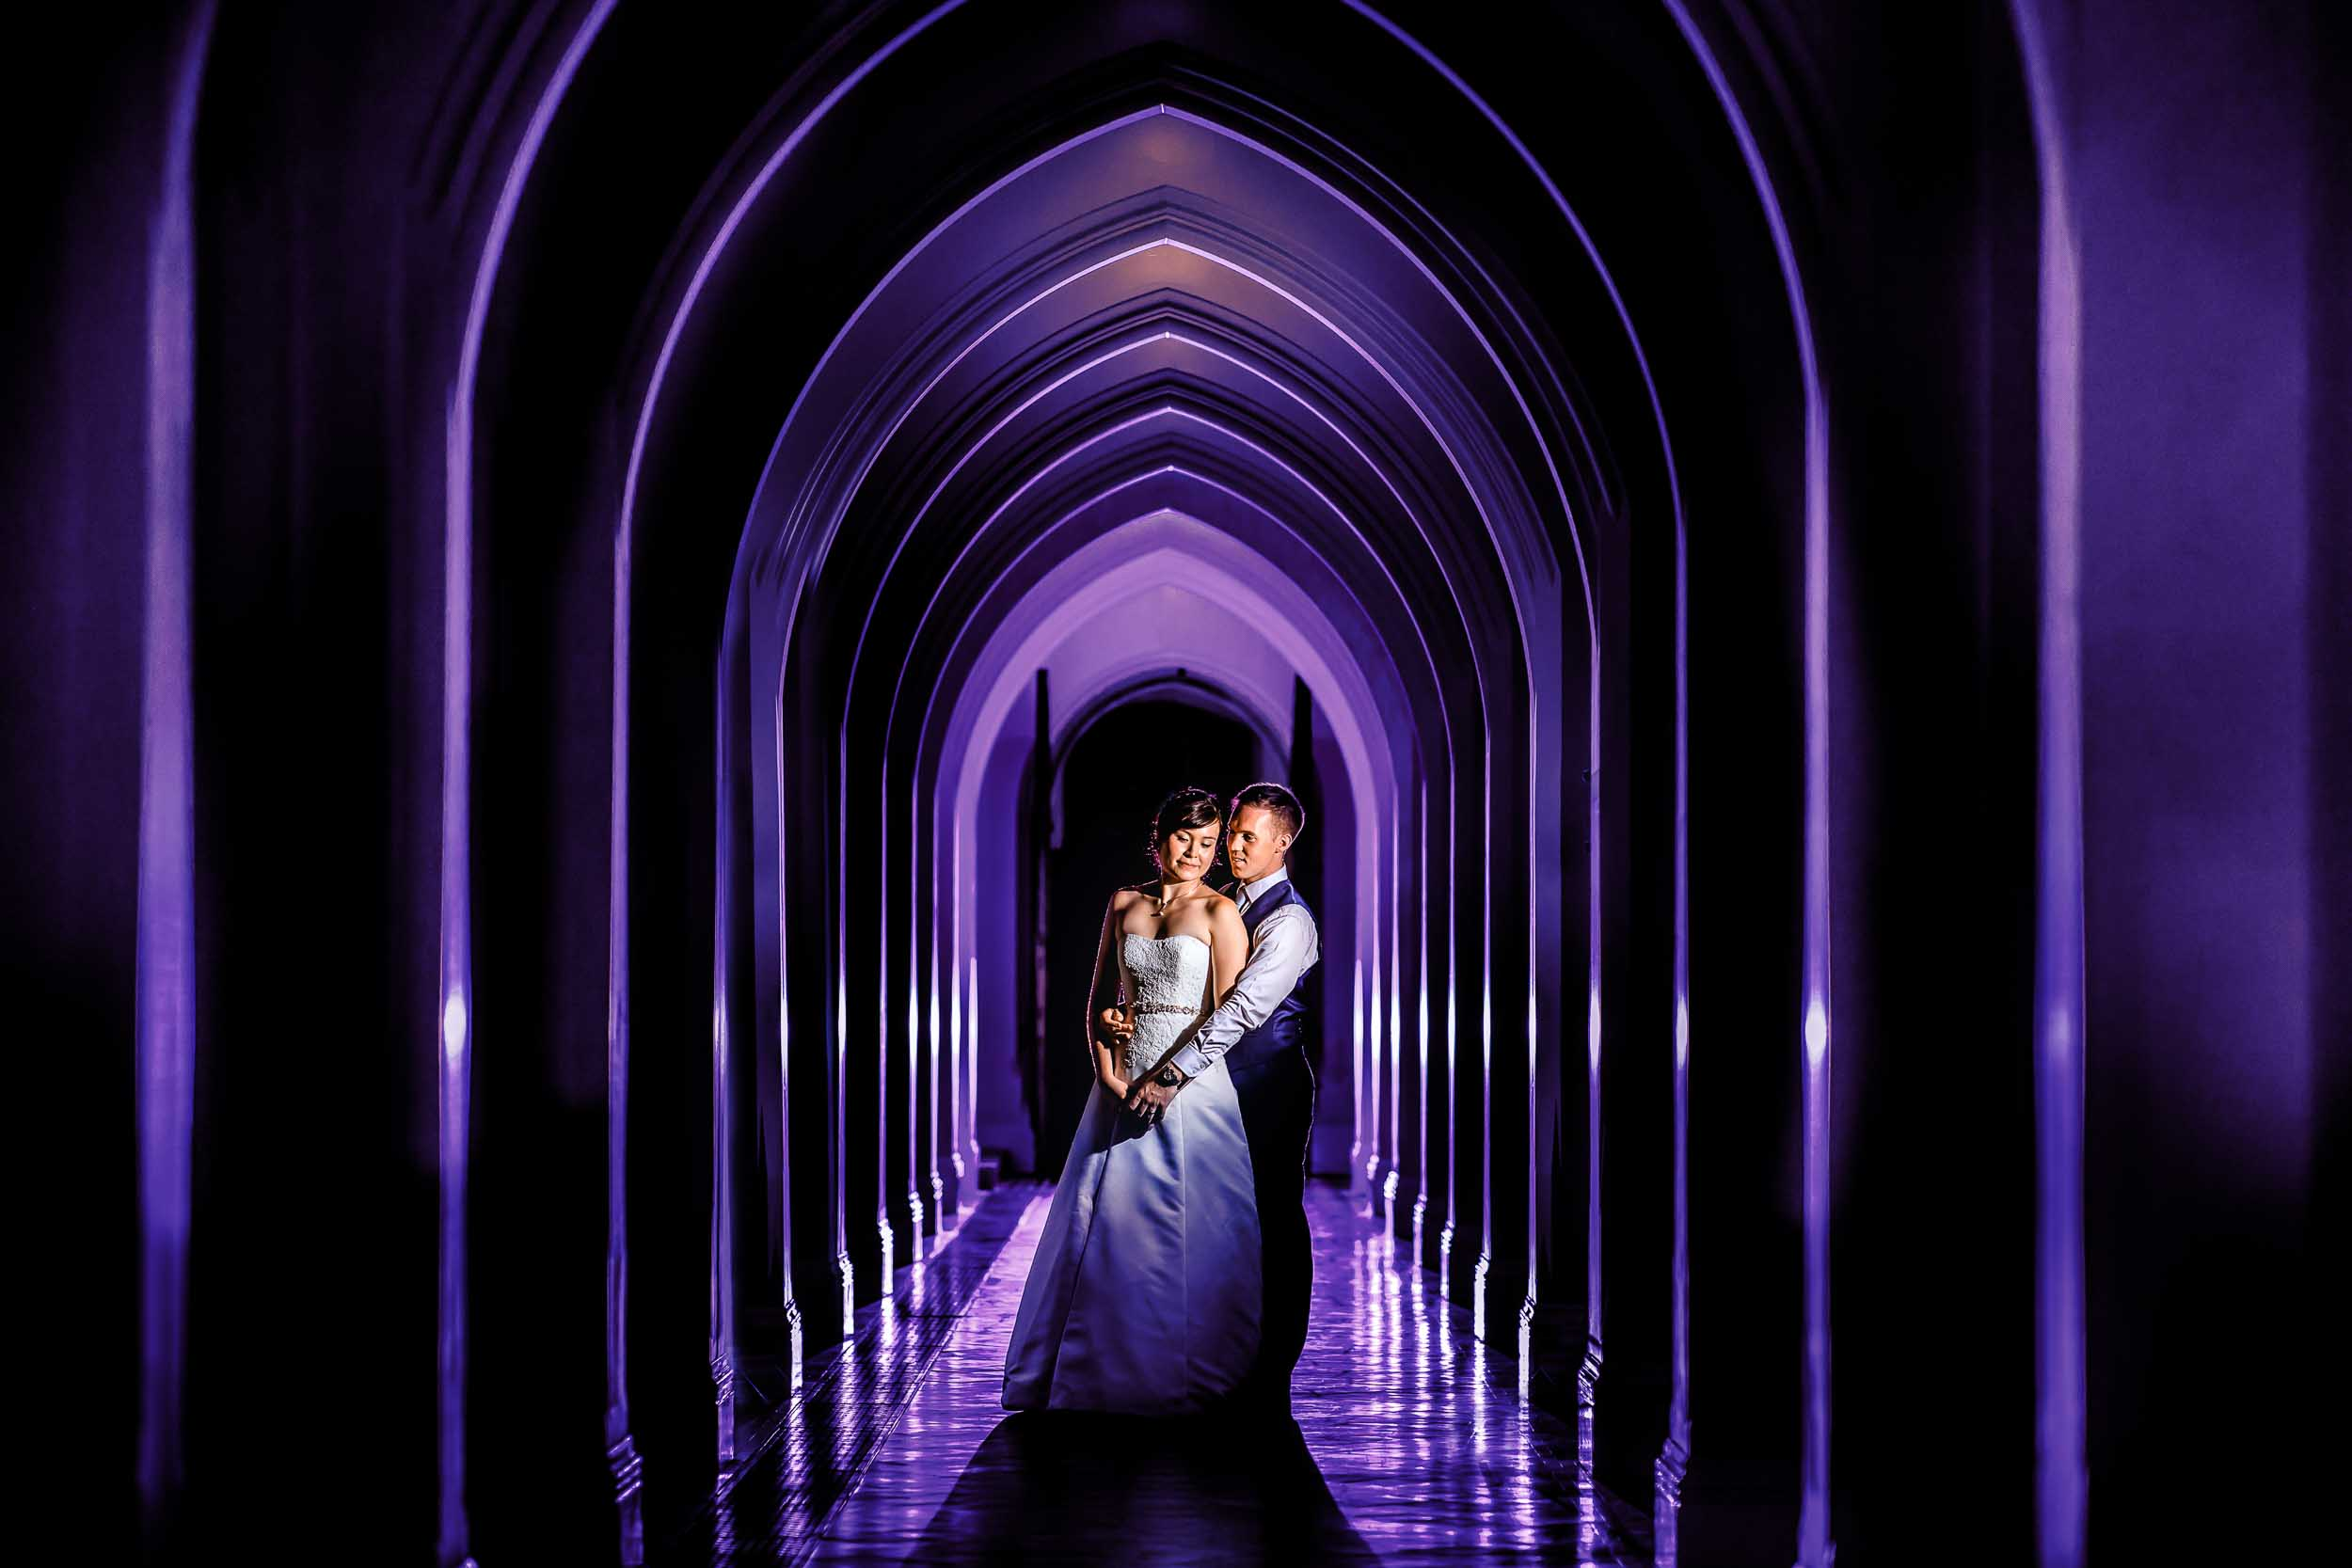 Stanbrook Abbey Wedding Photography, Stanbrook, abbey, Wedding, Photographer, Herefordshire, Worcestershire, Stanbrook Abbey, Wedding Photographer, wedding portraits